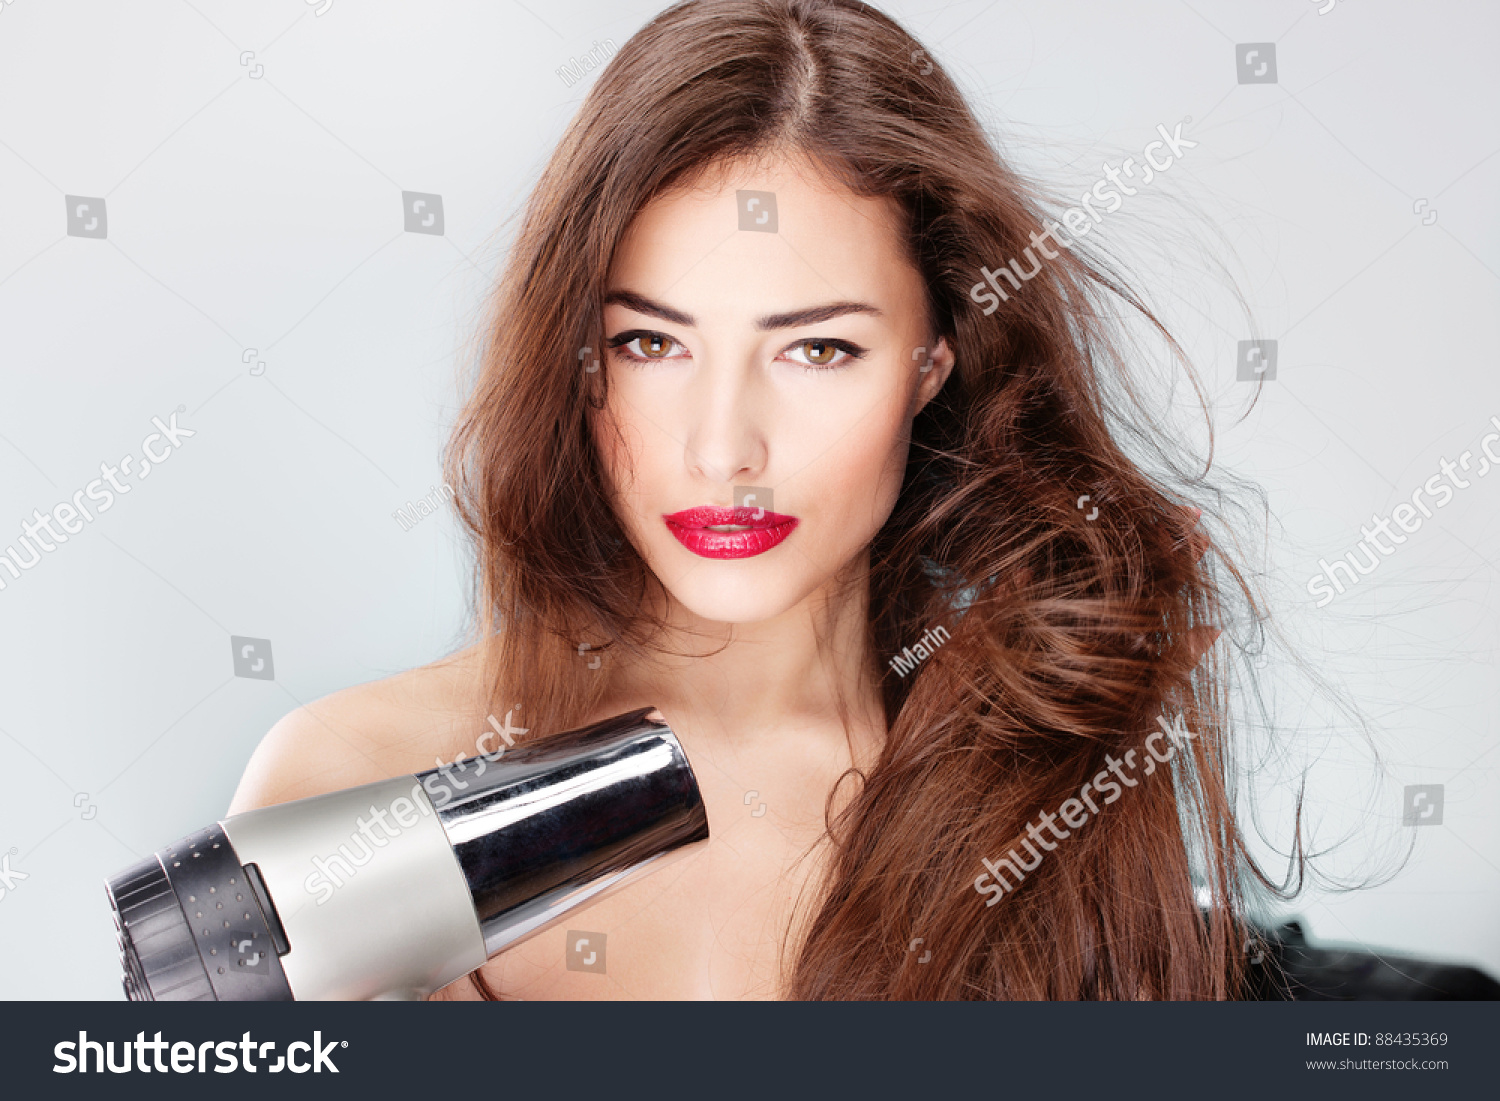 Woman Long Hair Holding Blow Dryer Stock Photo 88435369